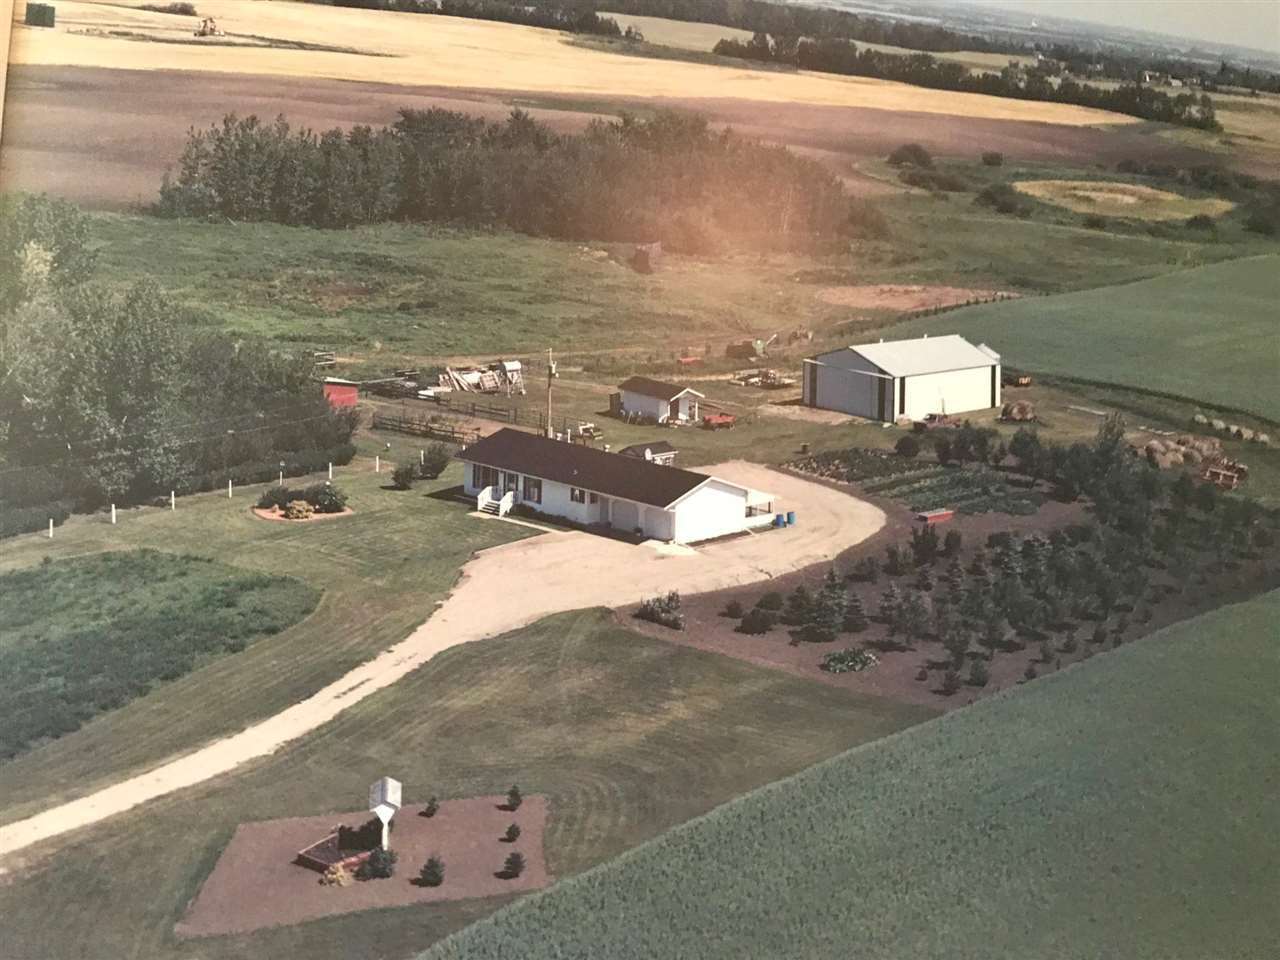 Handy location to access area plant facilities you  actual have a distant view of plants from the property. City water what a blessing on 79 acres rare find.  Paved drive leads to raised bungalow,  garage, machine shop, outbuildings, pasture, crop, etc .